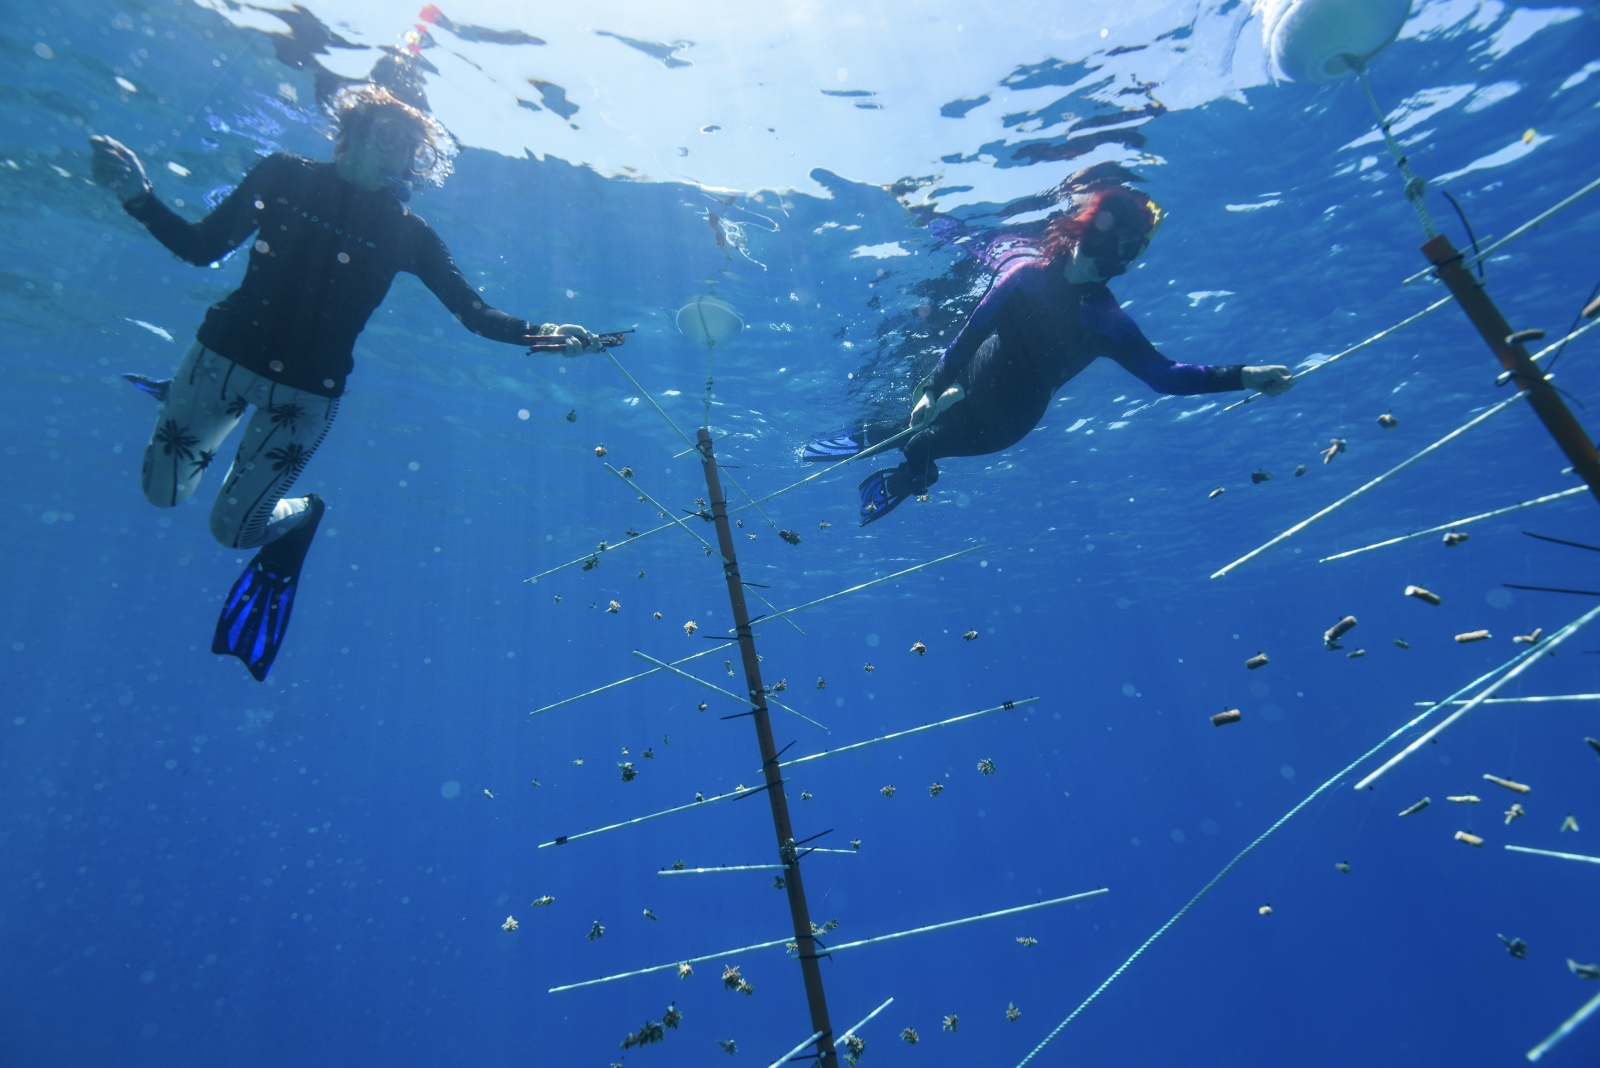 Protecting marine tourism: Divers at work on Great Barrier Reef coral nursery